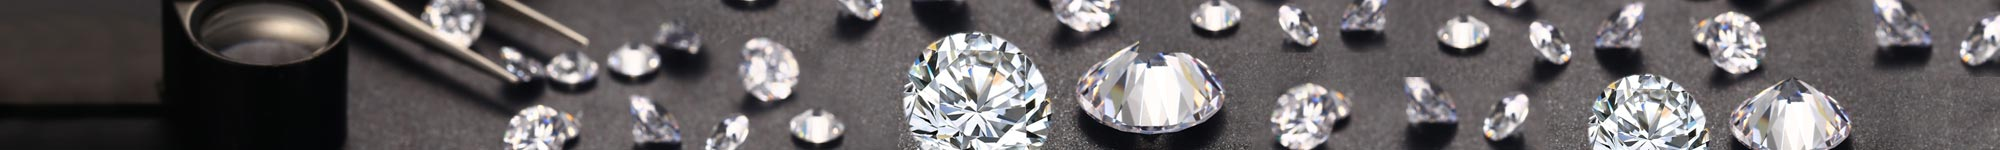 Buying diamonds in San Diego, California